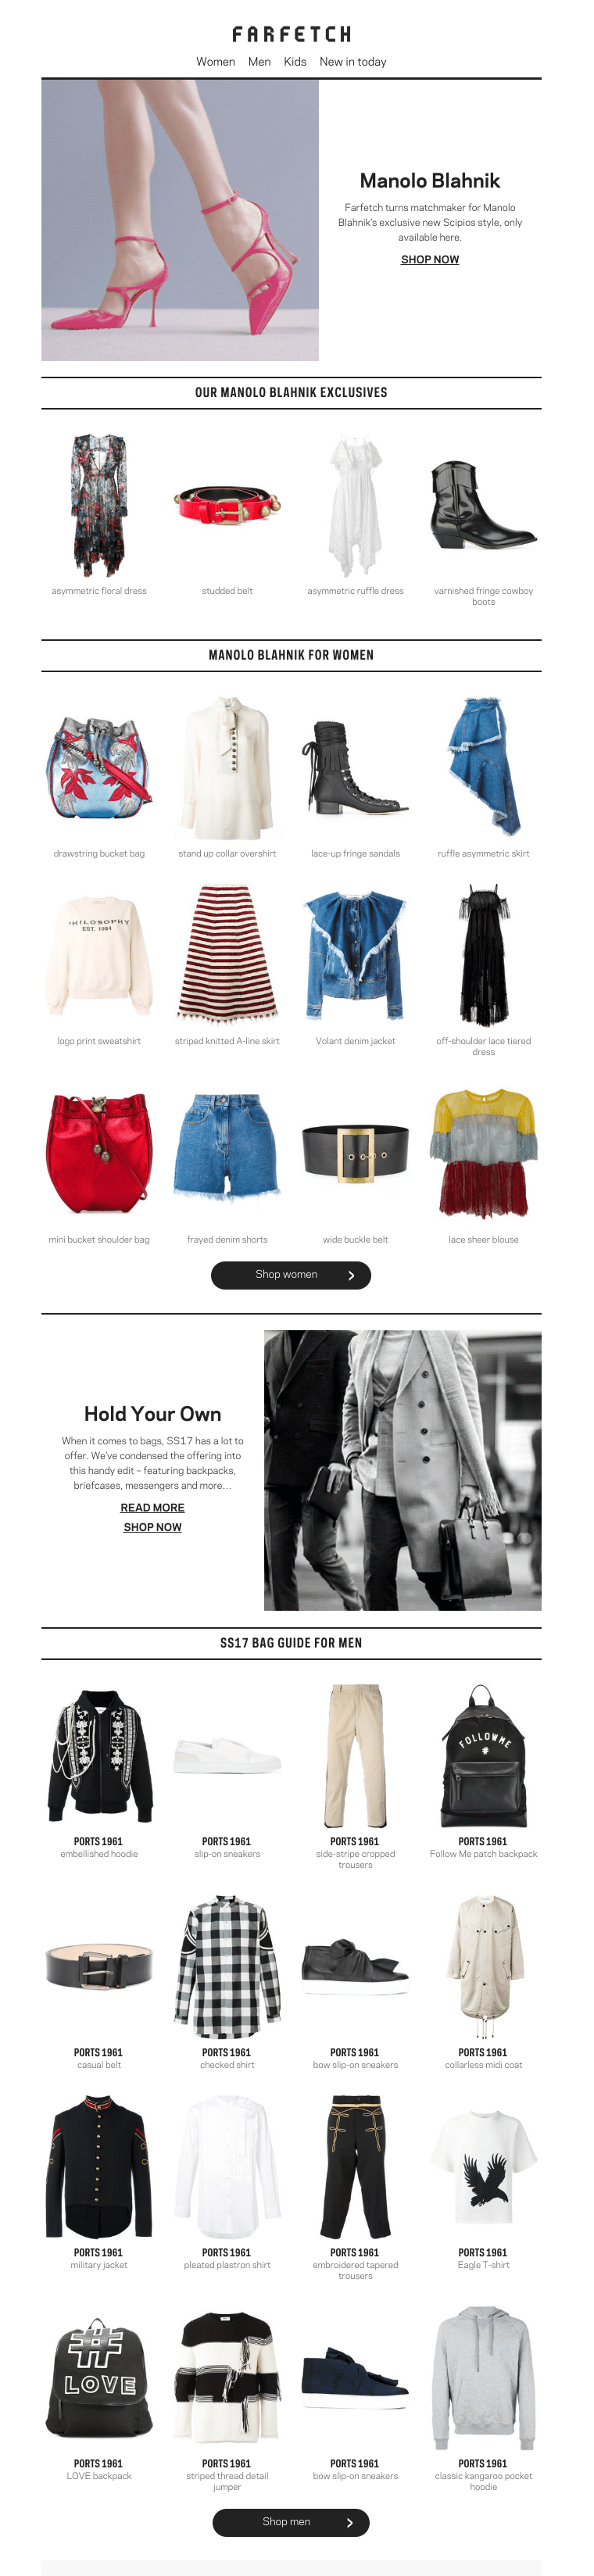 soundest-ecommerce-newsletter-examples9